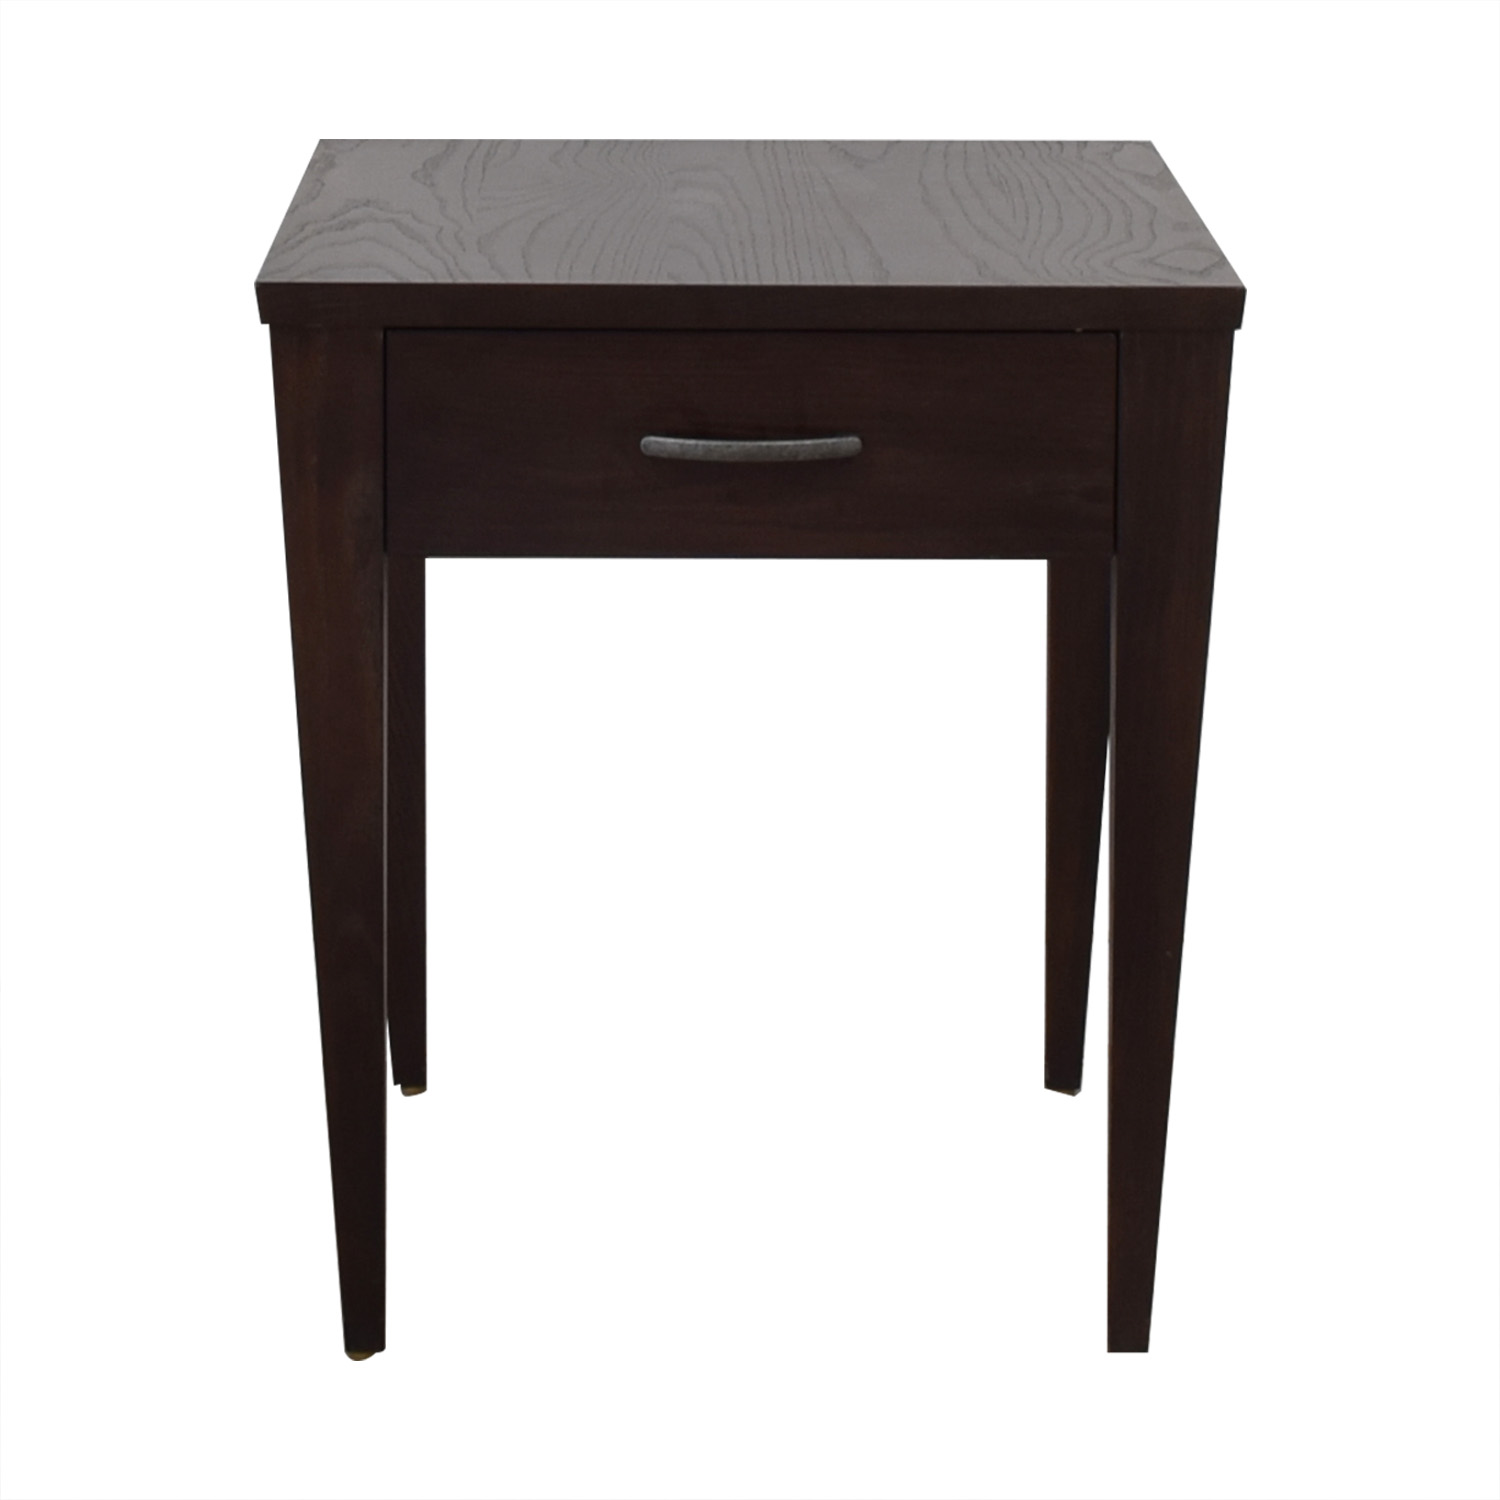 Ethan Allen Ethan Allen Rectangle End Table price